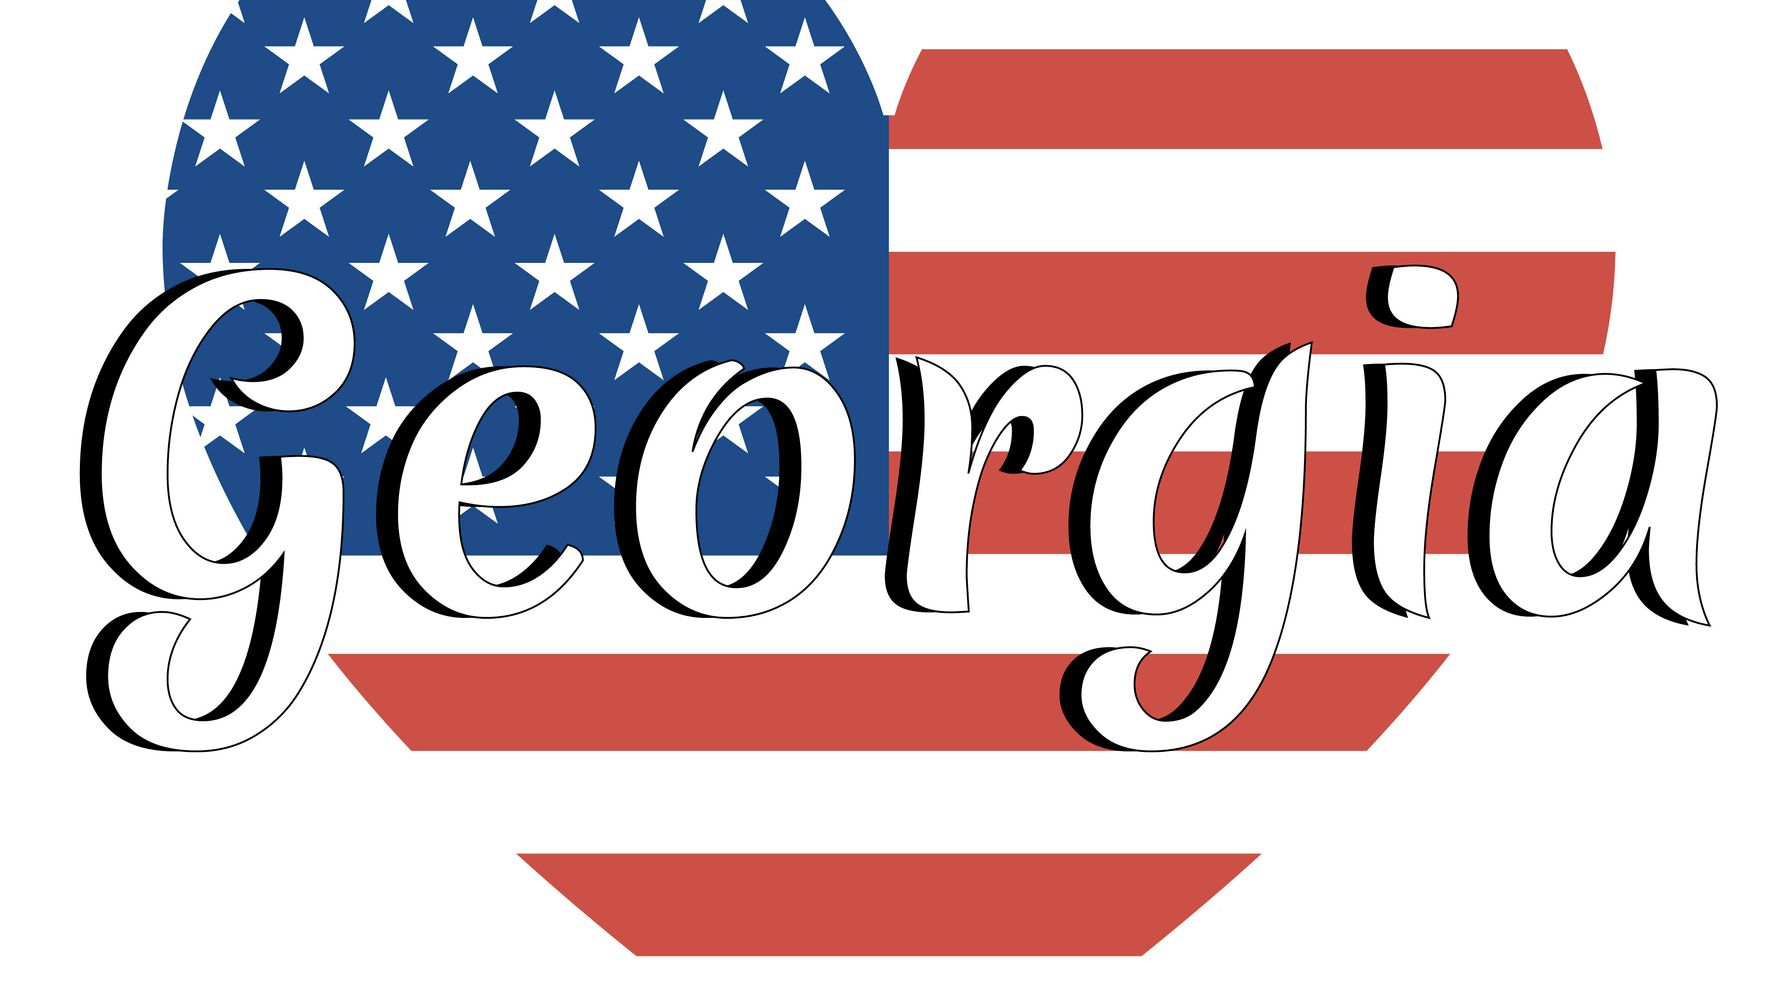 Georgia's Congressional Republicans Can't Spell 'Georgia' In Vote Fraud Letter